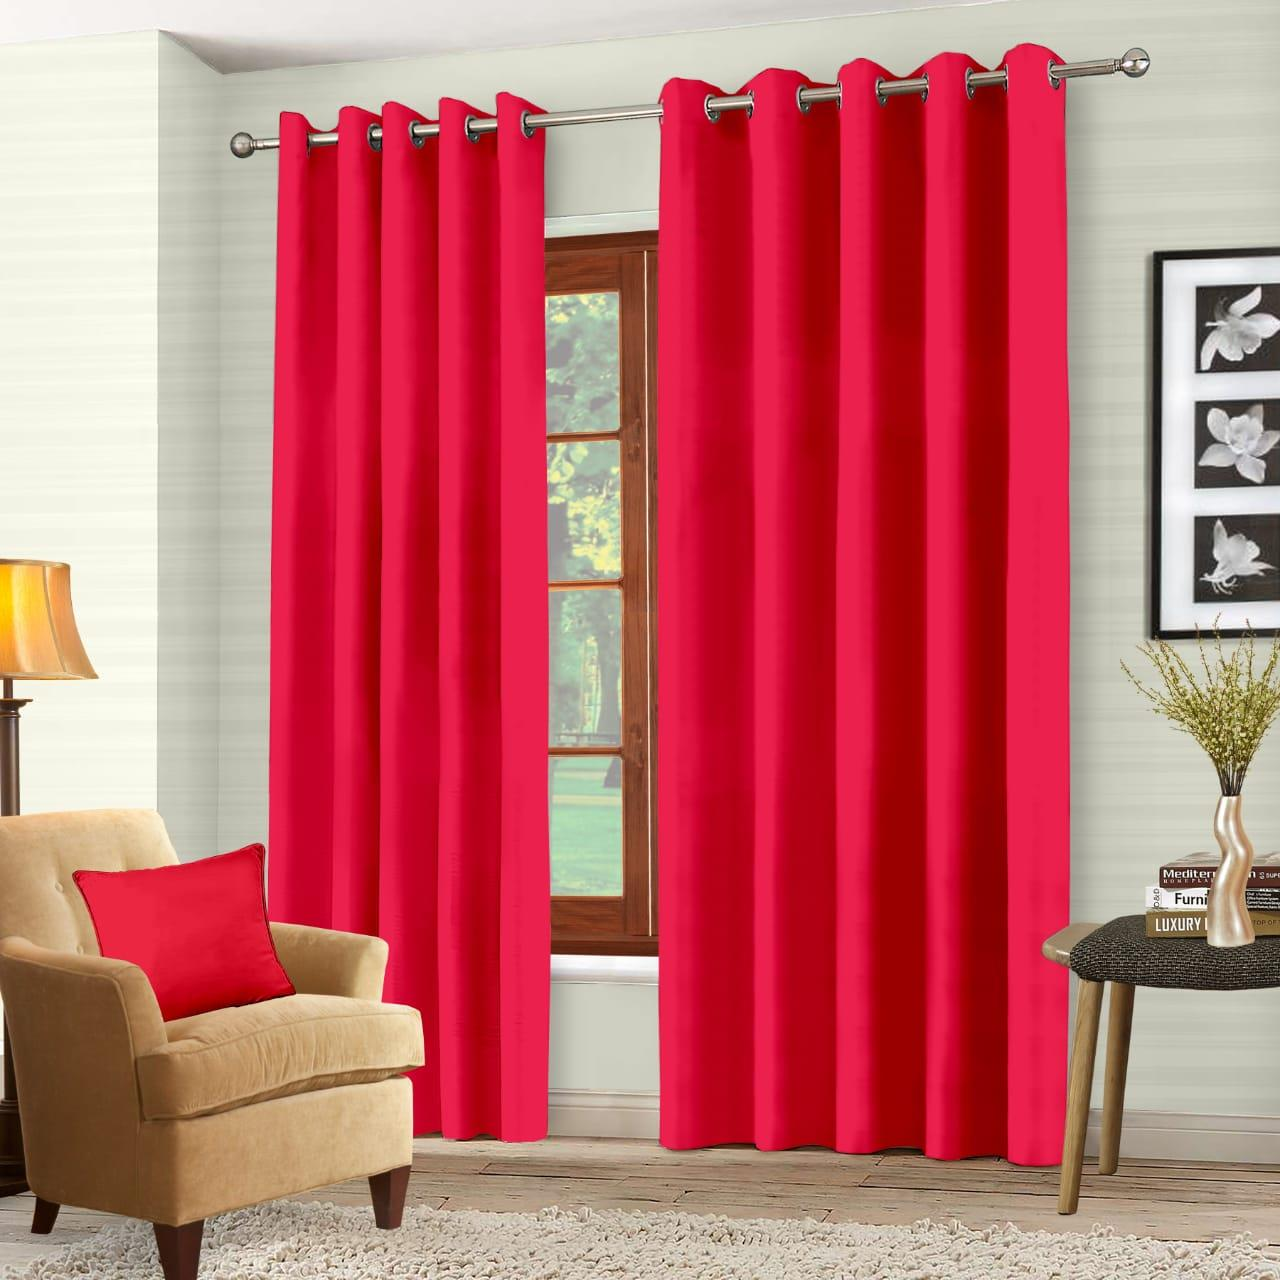 Luxury-Thermal-Blackout-Eyelet-Ring-Top-Curtains-Pair-with-tie-backs thumbnail 36